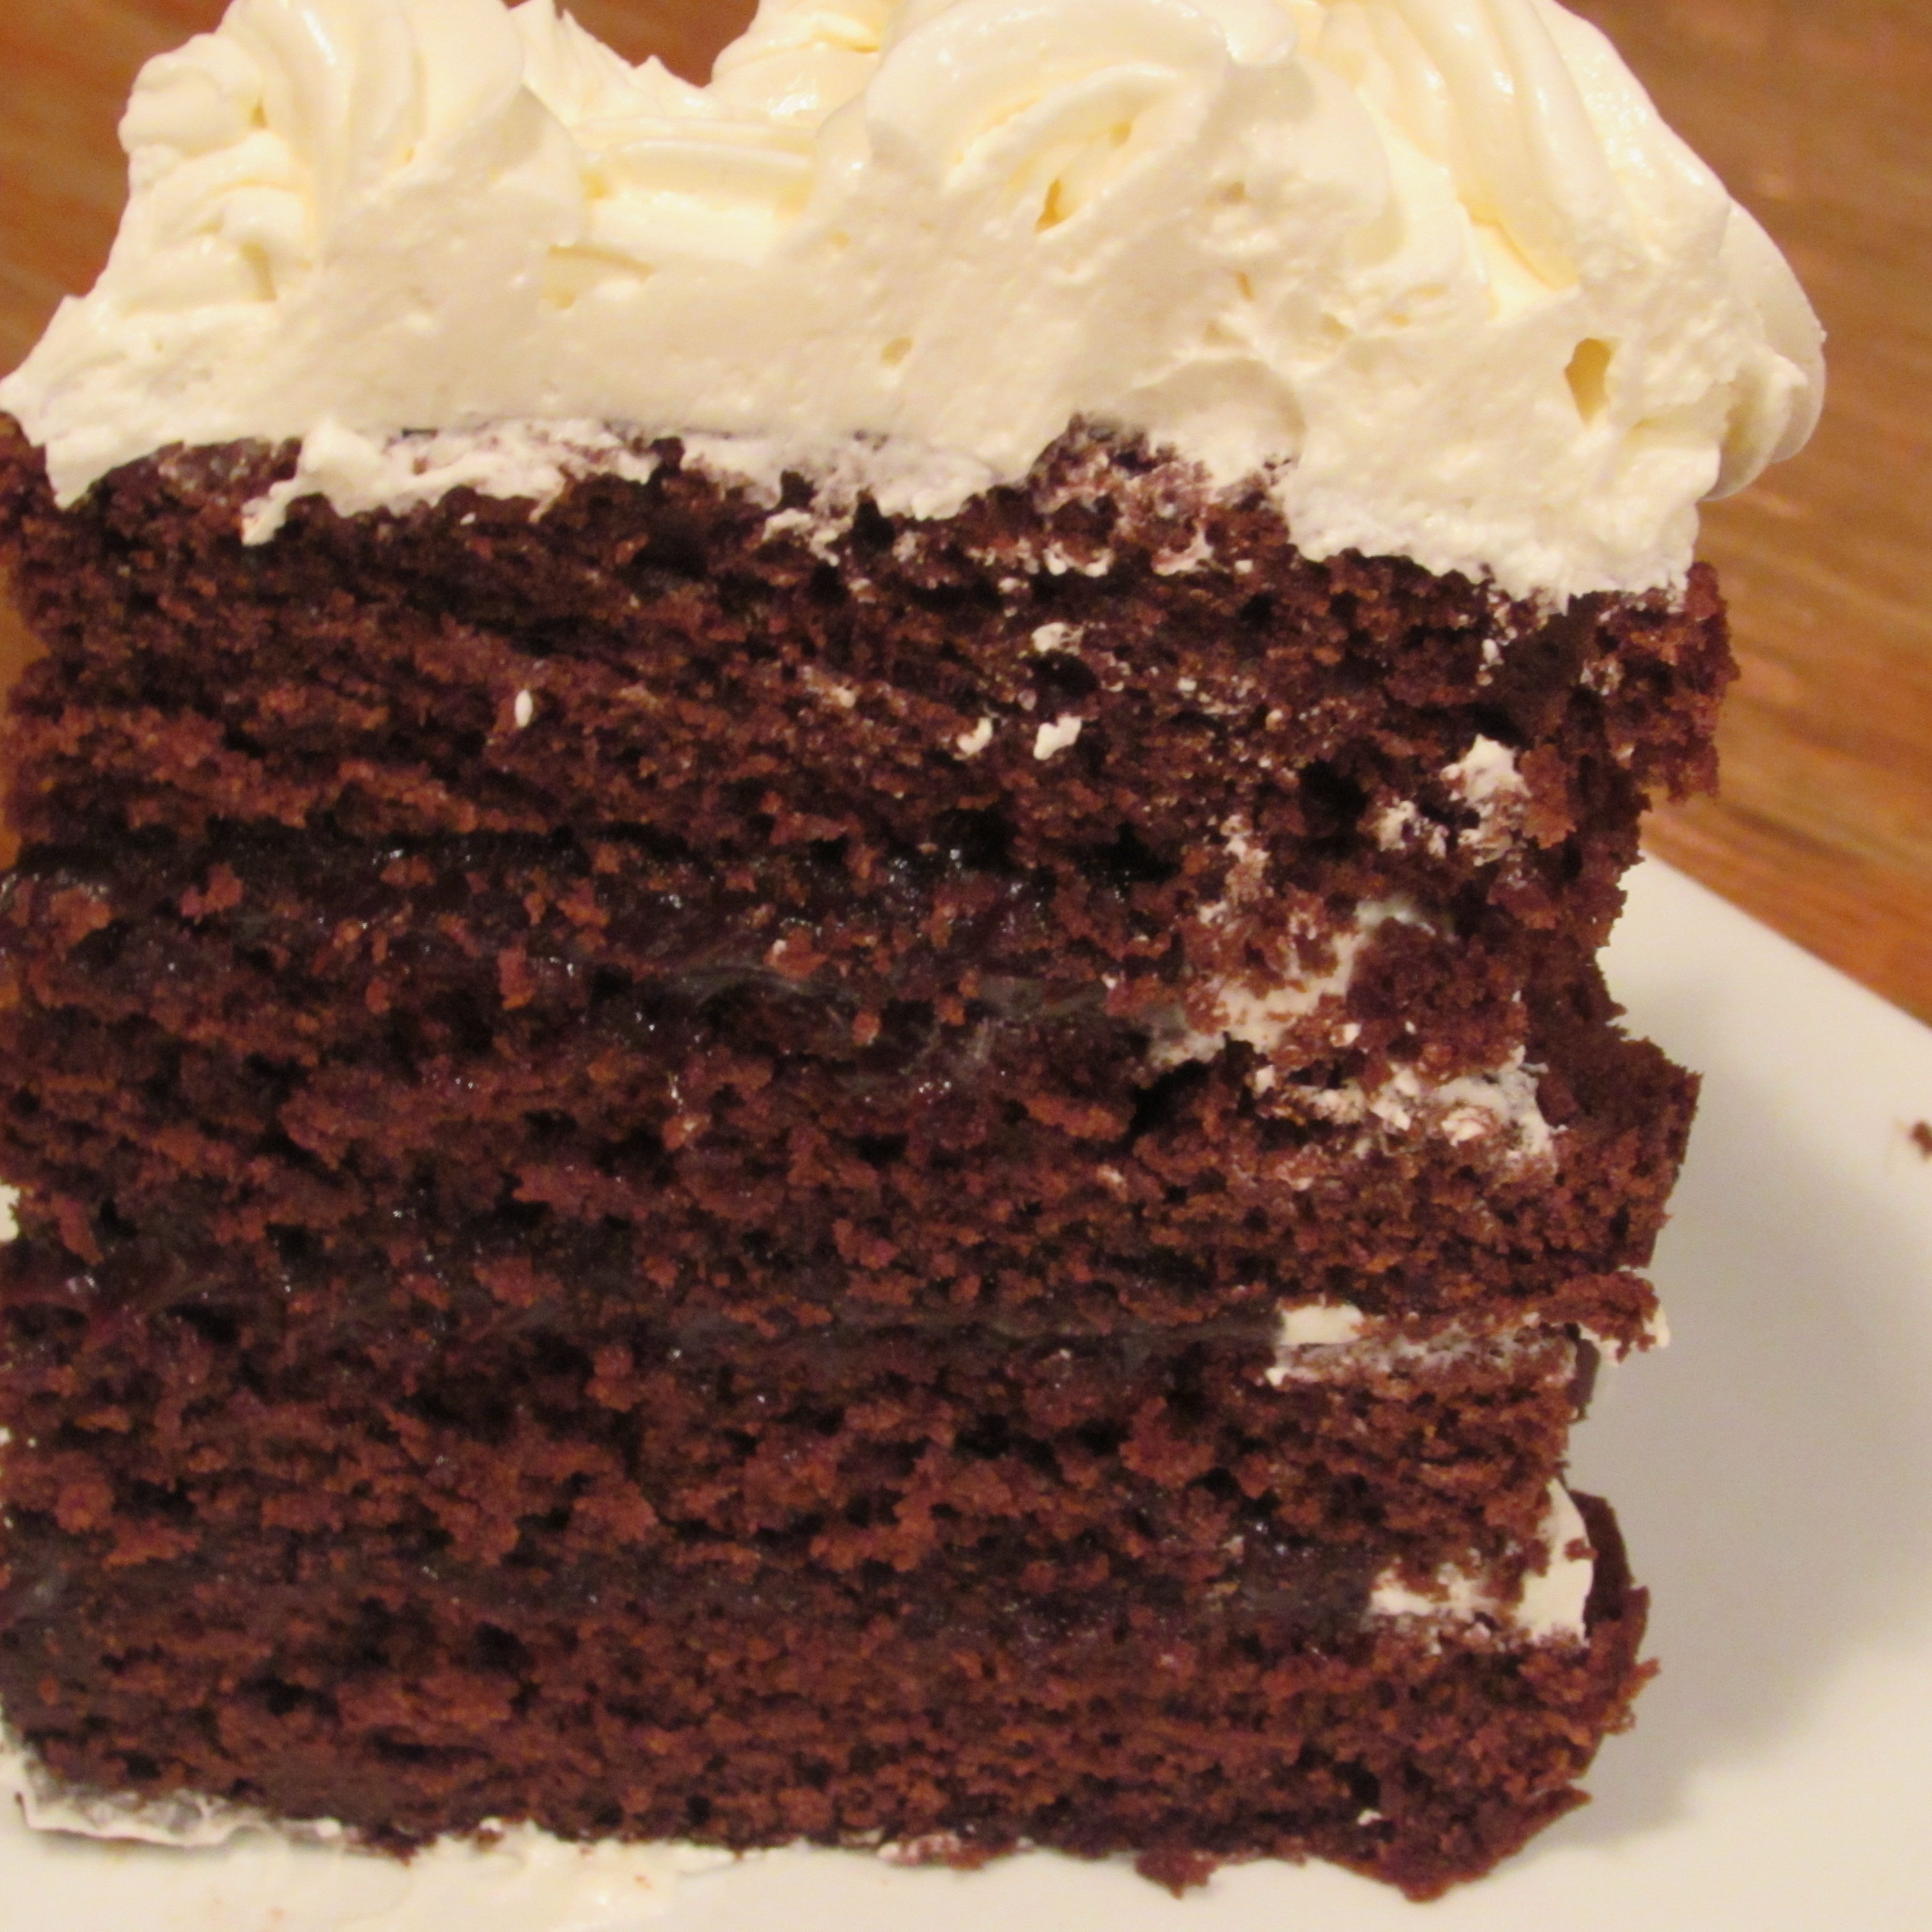 Why Ugly Cake Tastes Better – The Devil ['s Food] is In